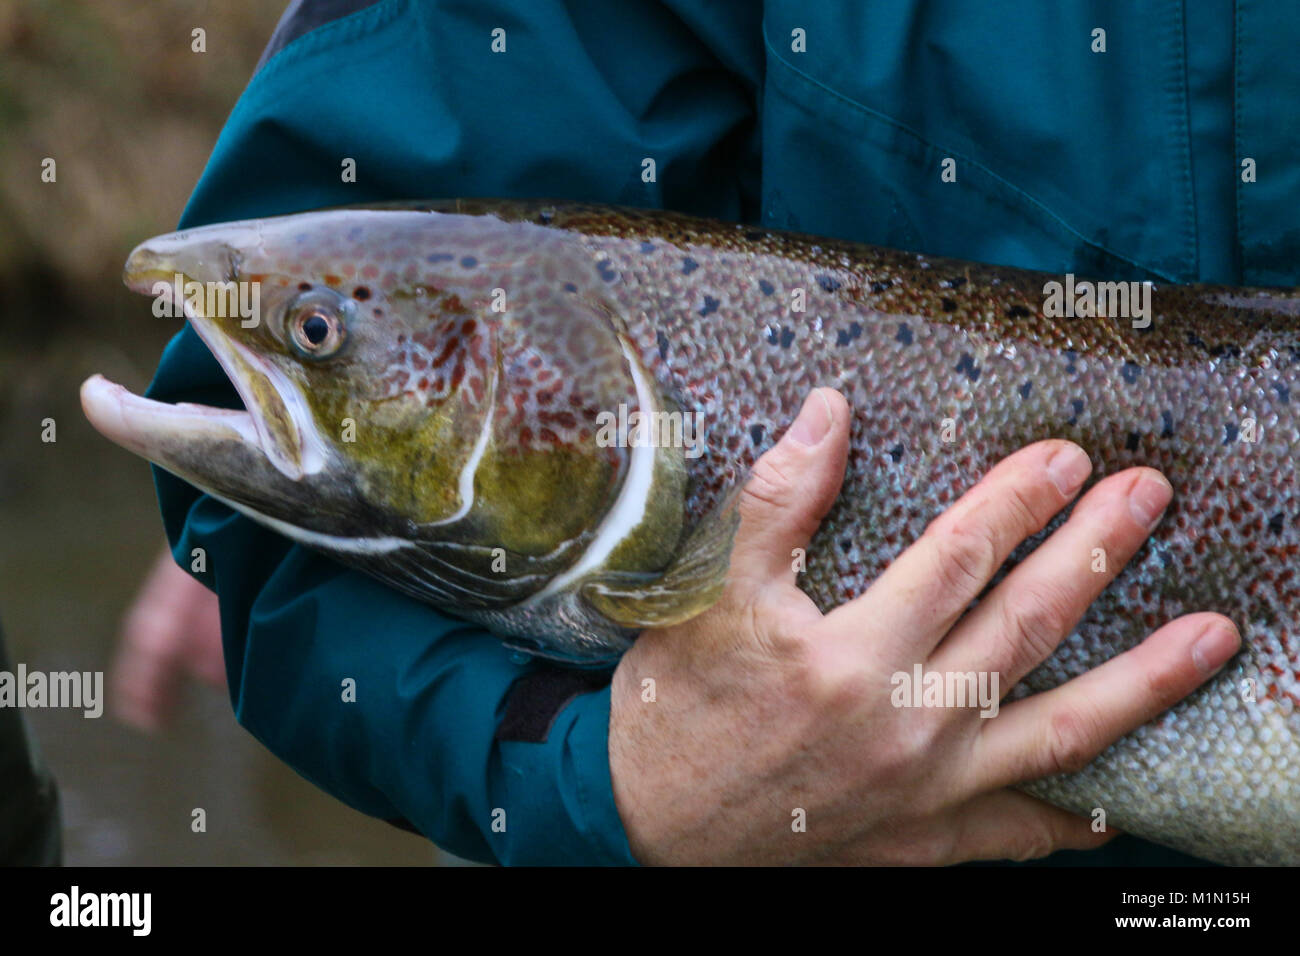 Magdeburg, Germany - December 15,2017: A man is holding a salmon, which has regained its habitat in the river Nuthe Stock Photo